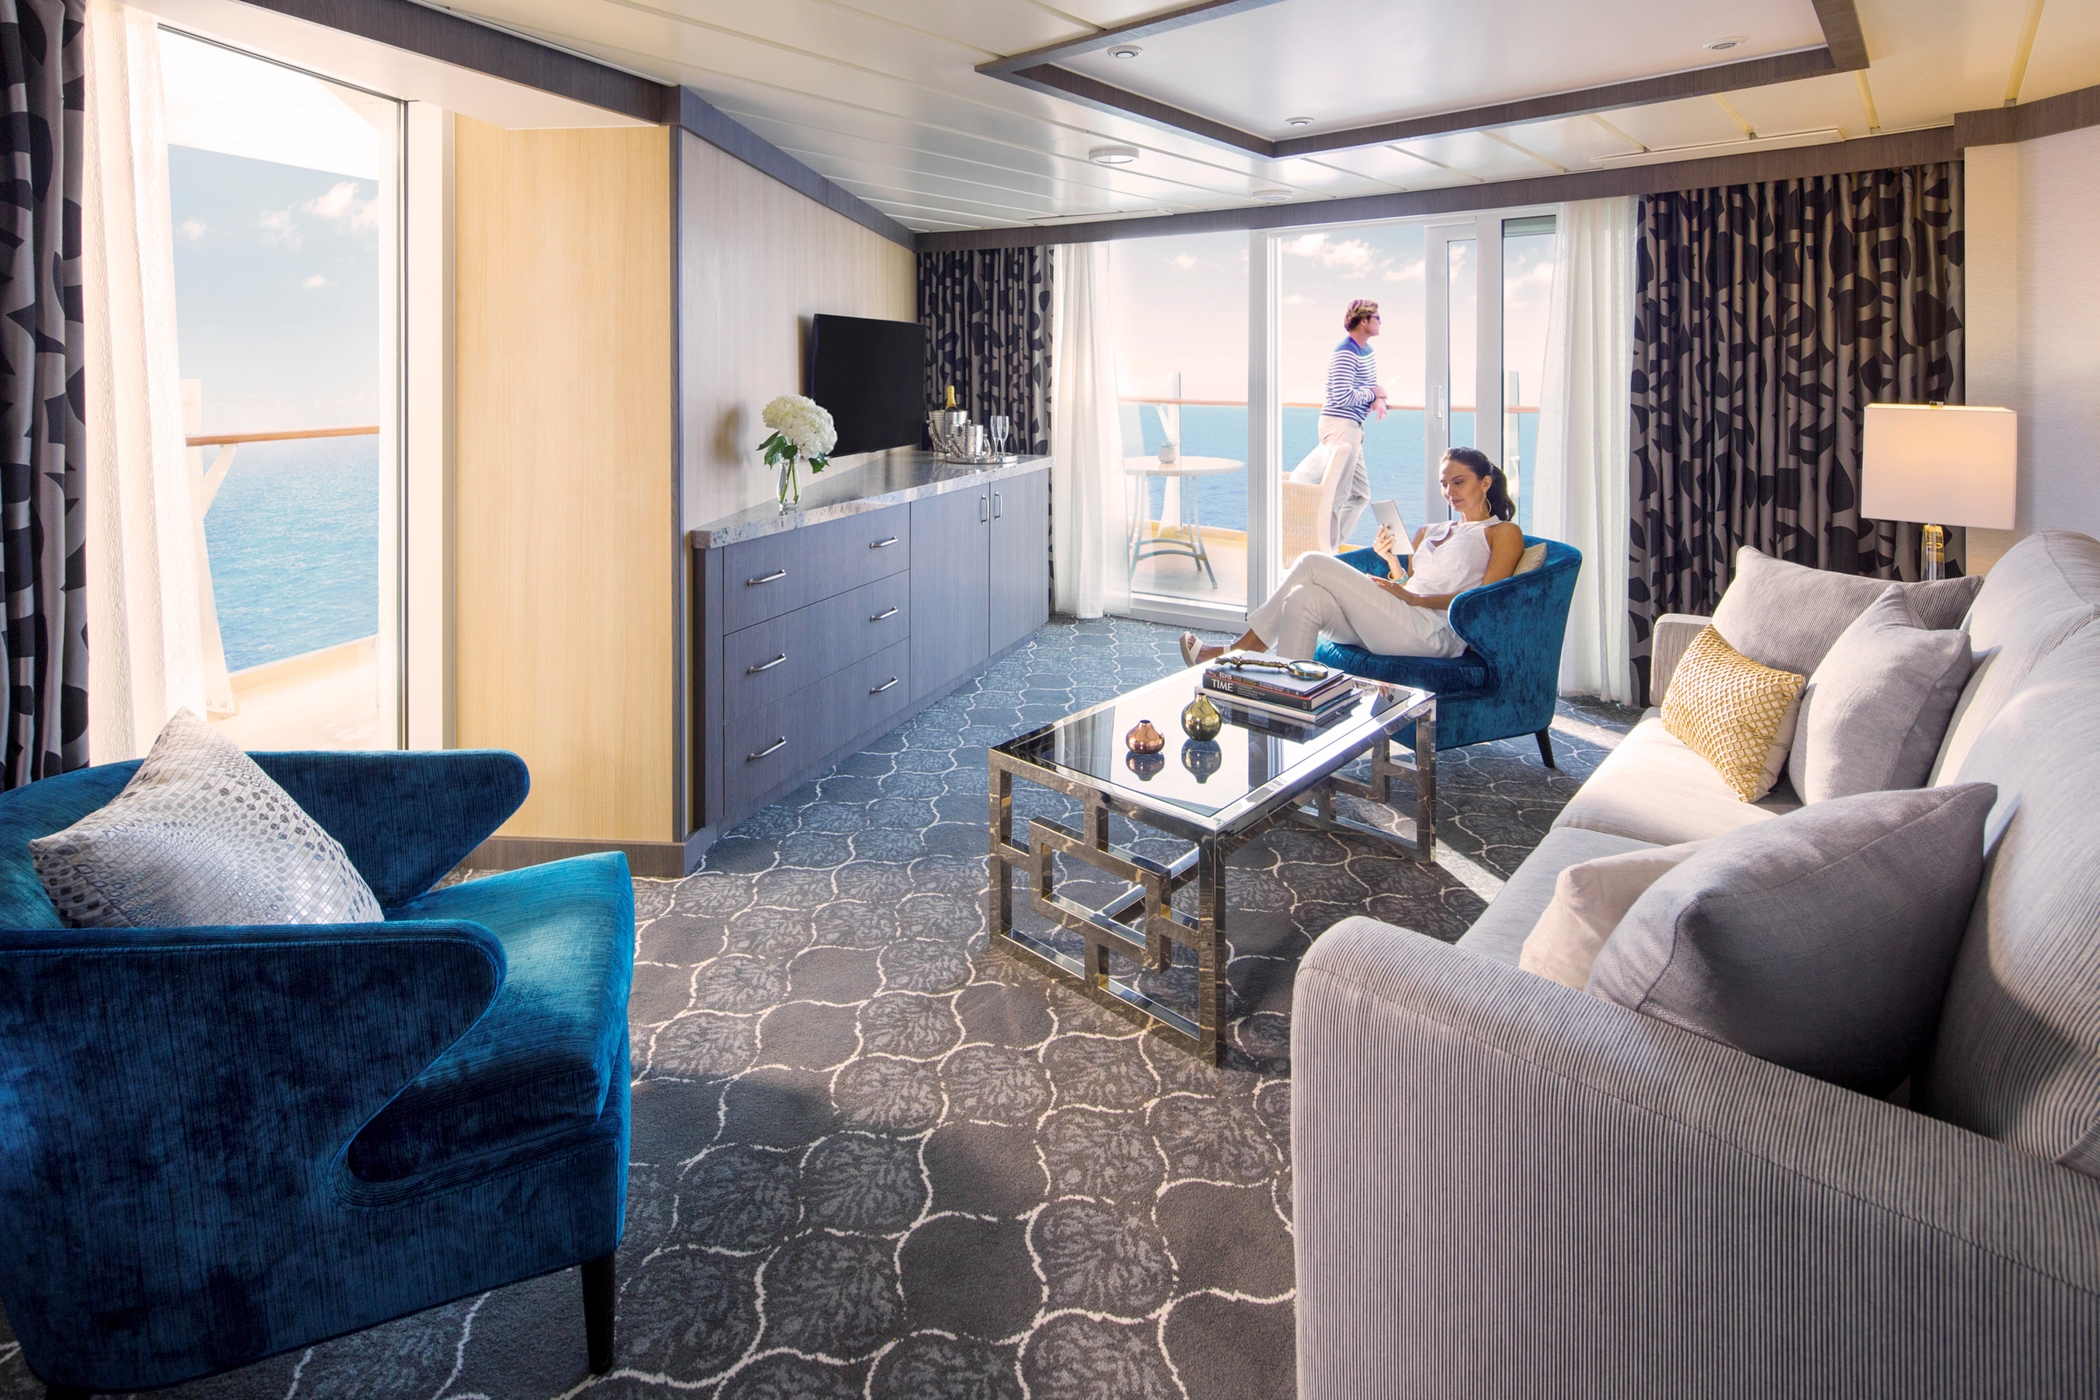 Symphony Of The Seas Cruise Direction Tailor Made Cruise Holidays